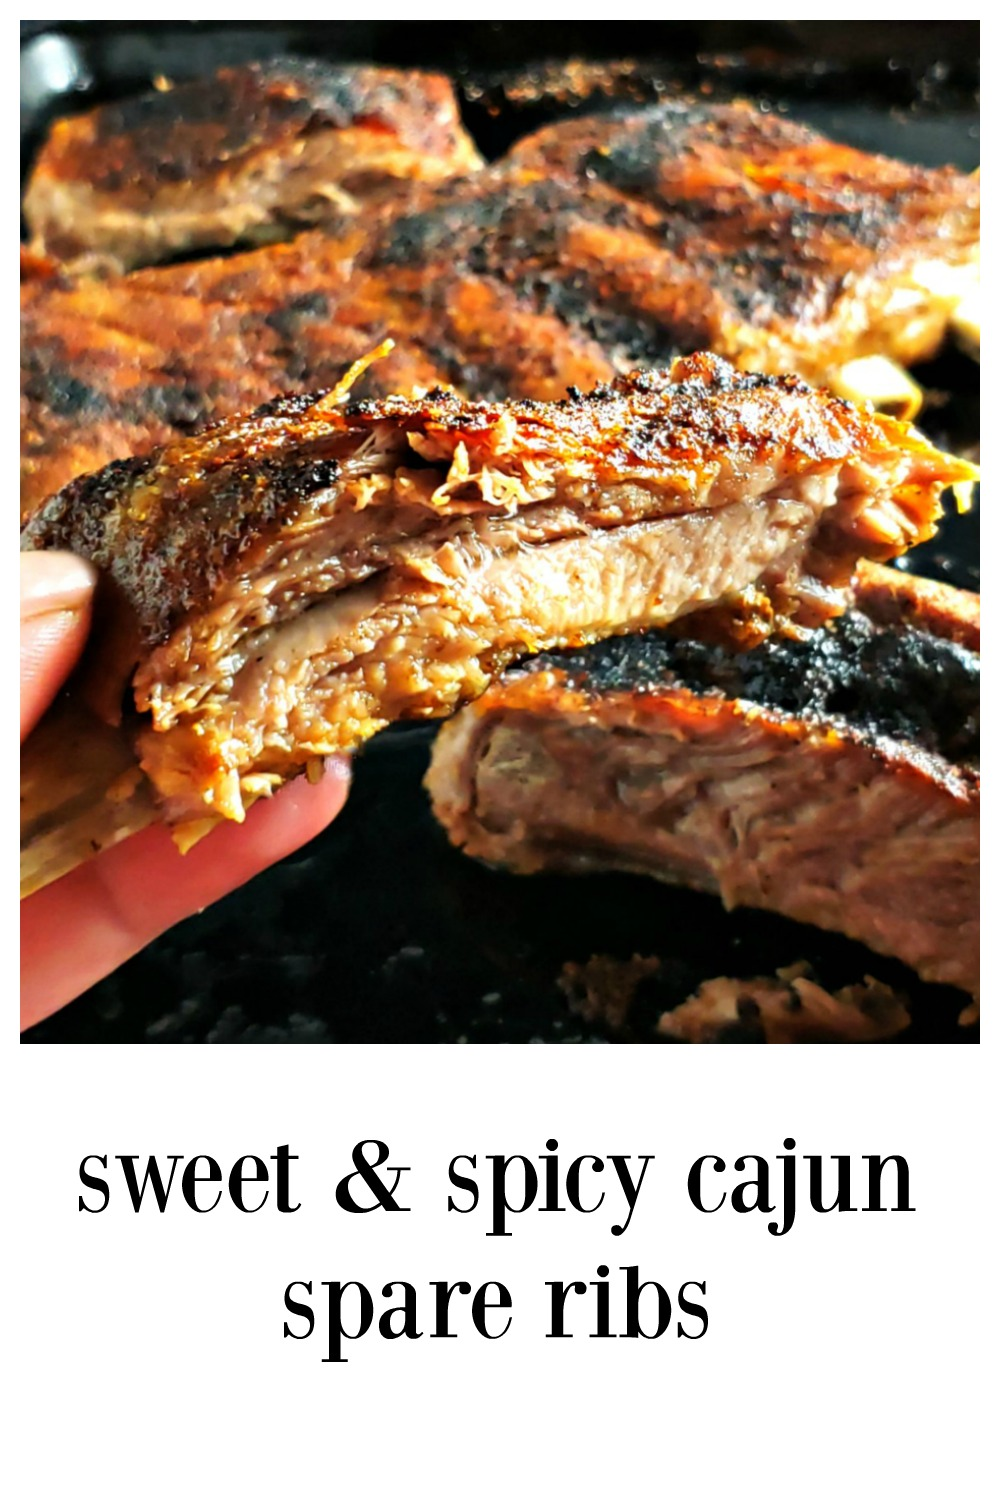 These super easy ribs are gonna blow your mind! Just enough spice to enhance, they're juicy with a gorgeous bark. Smoke, Oven Cook or make in Instant Pot. #CajunSpareRibs #CajunRibs #InstantPotRibs #IPRibs #SpareRibs #SmokedCajunRibs